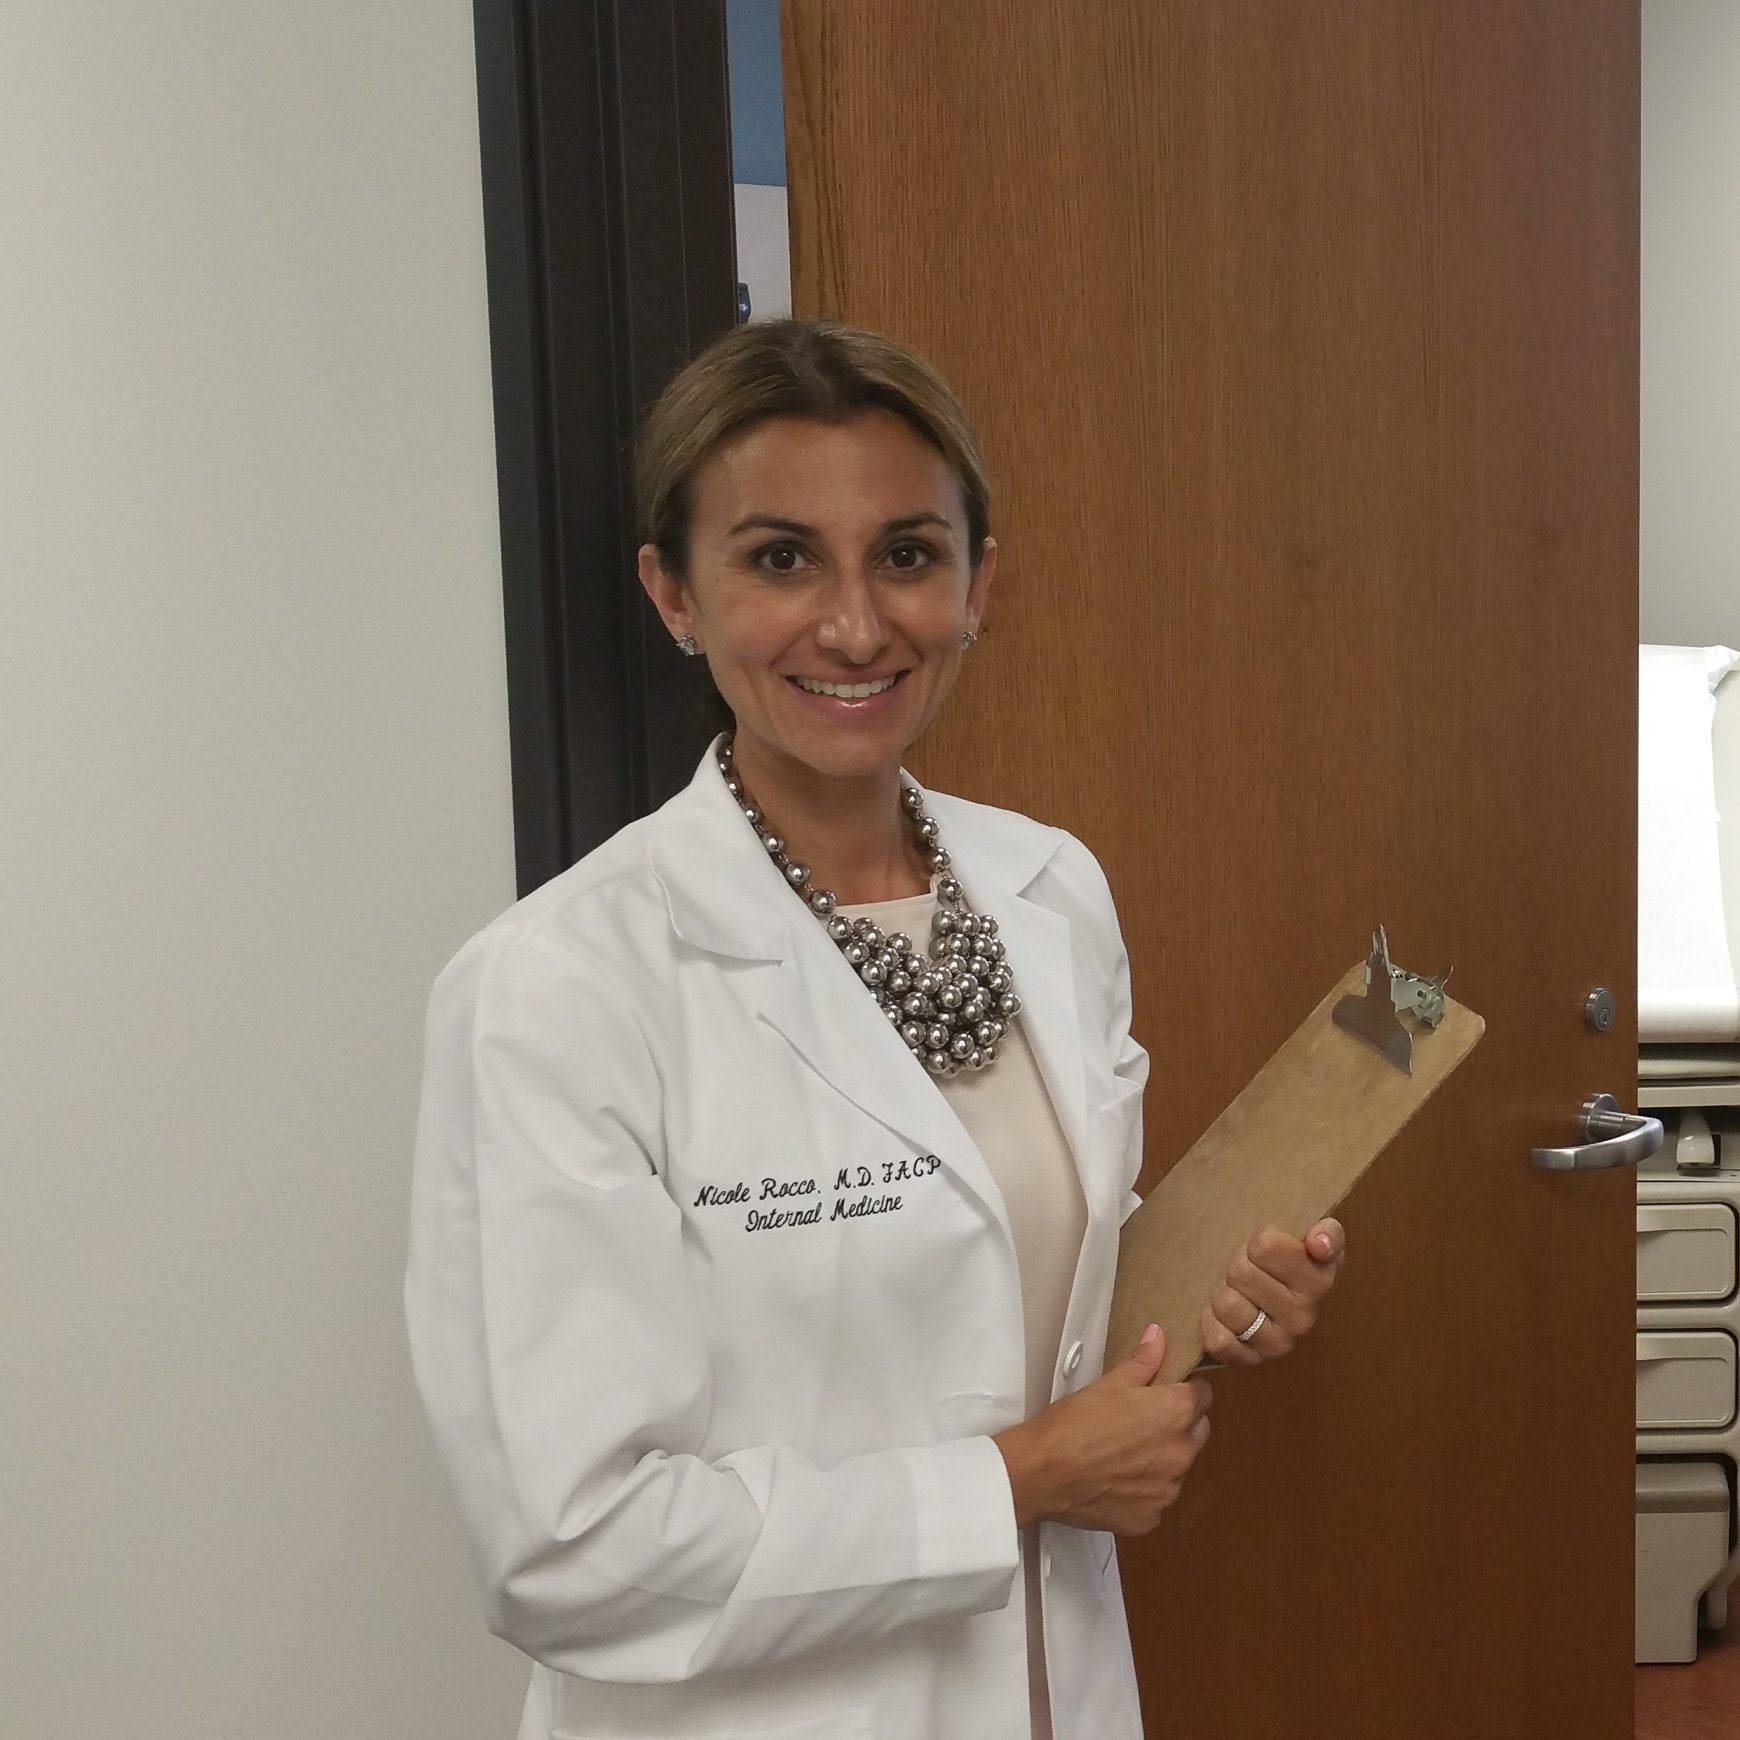 Welcome Nicole Rocco, MD, F.A.C.P